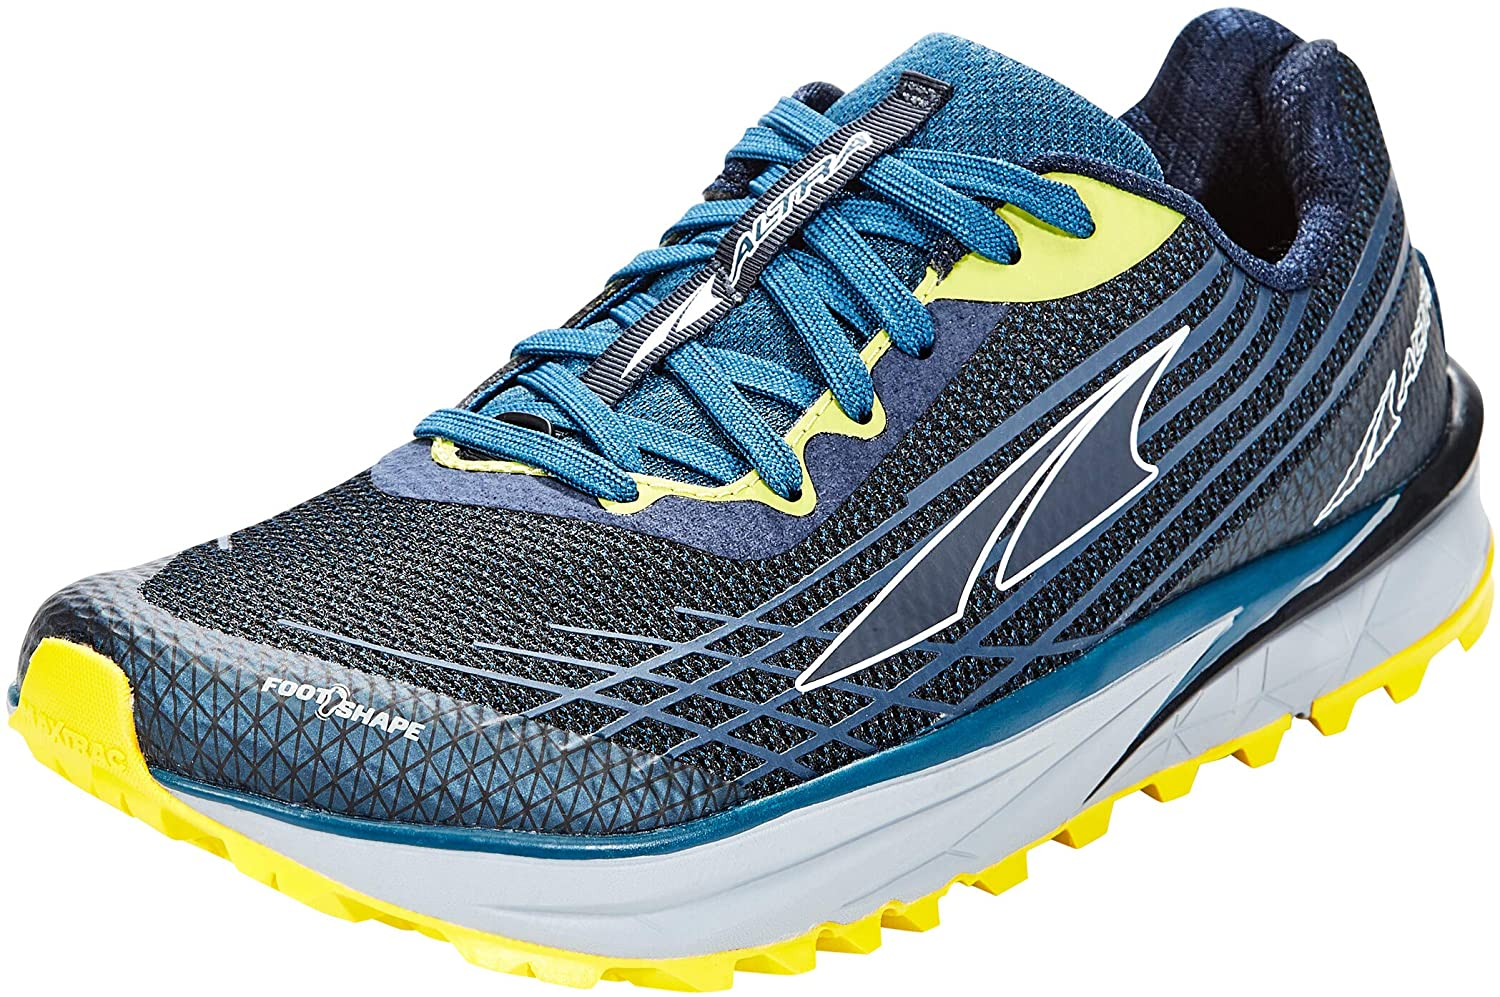 Altra Men's TIMP 2 Trail Running Shoe in Moroccan Blue/Yellow from the side